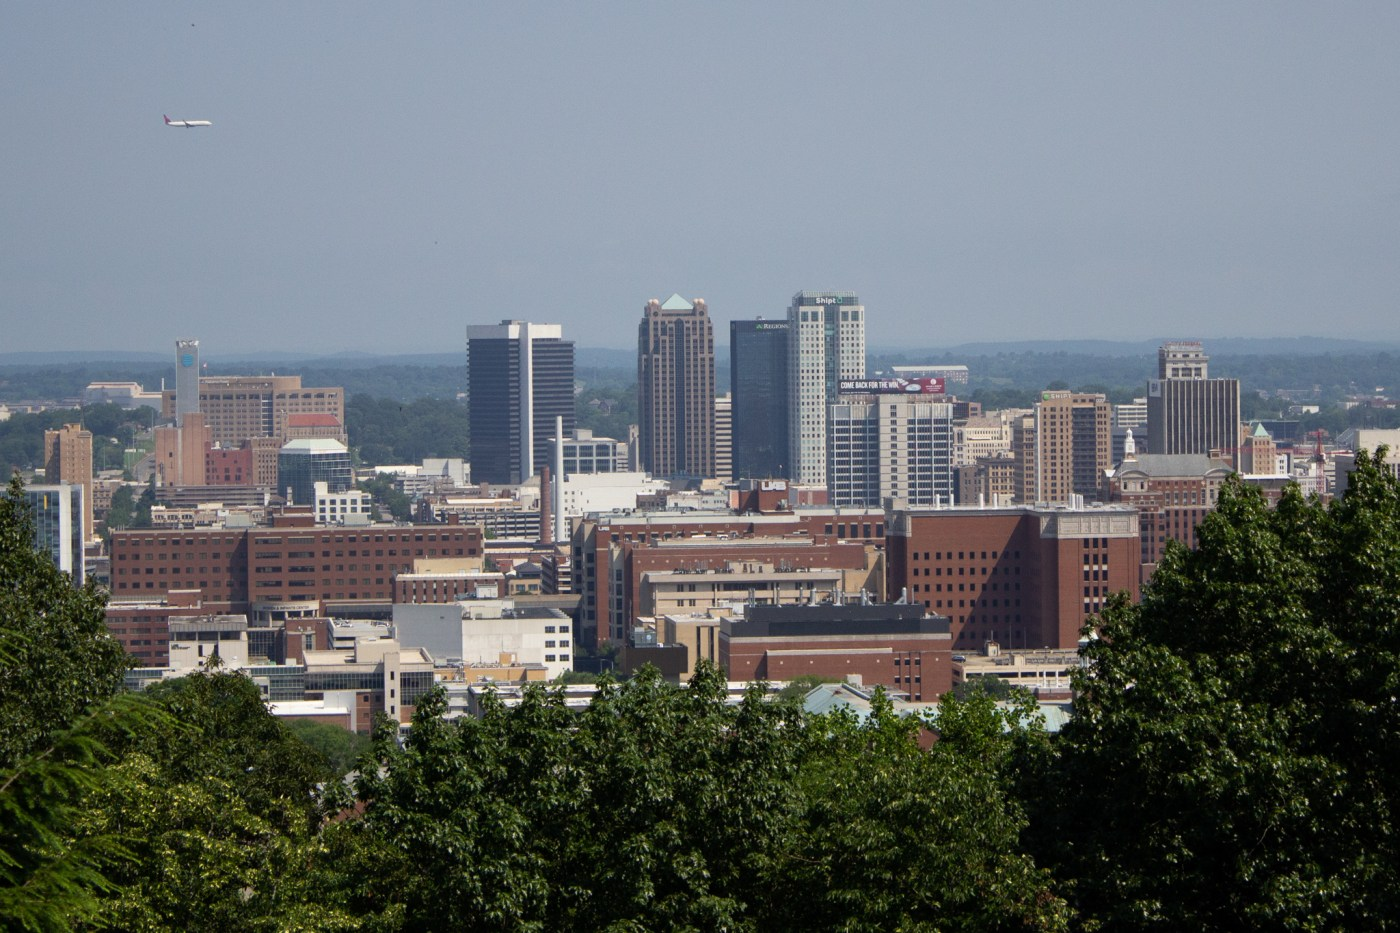 Birmingham may be 150 this year, but the Magic City is looking better than ever! Photo by Libby Foster for Bham Now.